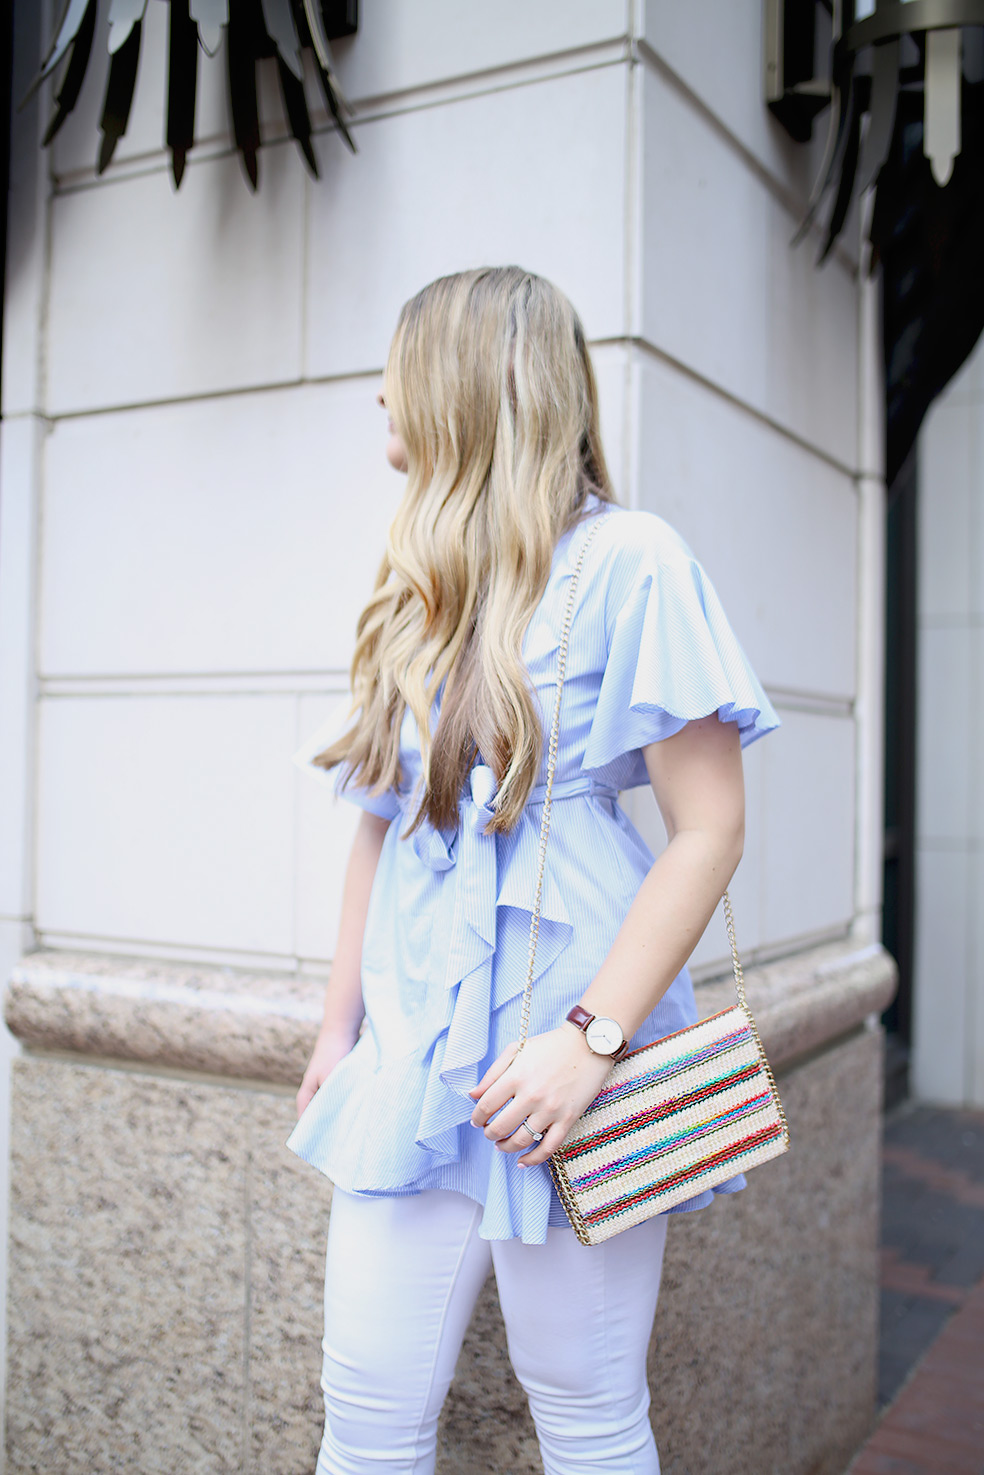 Dallas fashion blogger Cameron Proffitt wears Topshop wrap shirt with white jeans -- topshop shirt dress -- chelsea28 crossbody bag